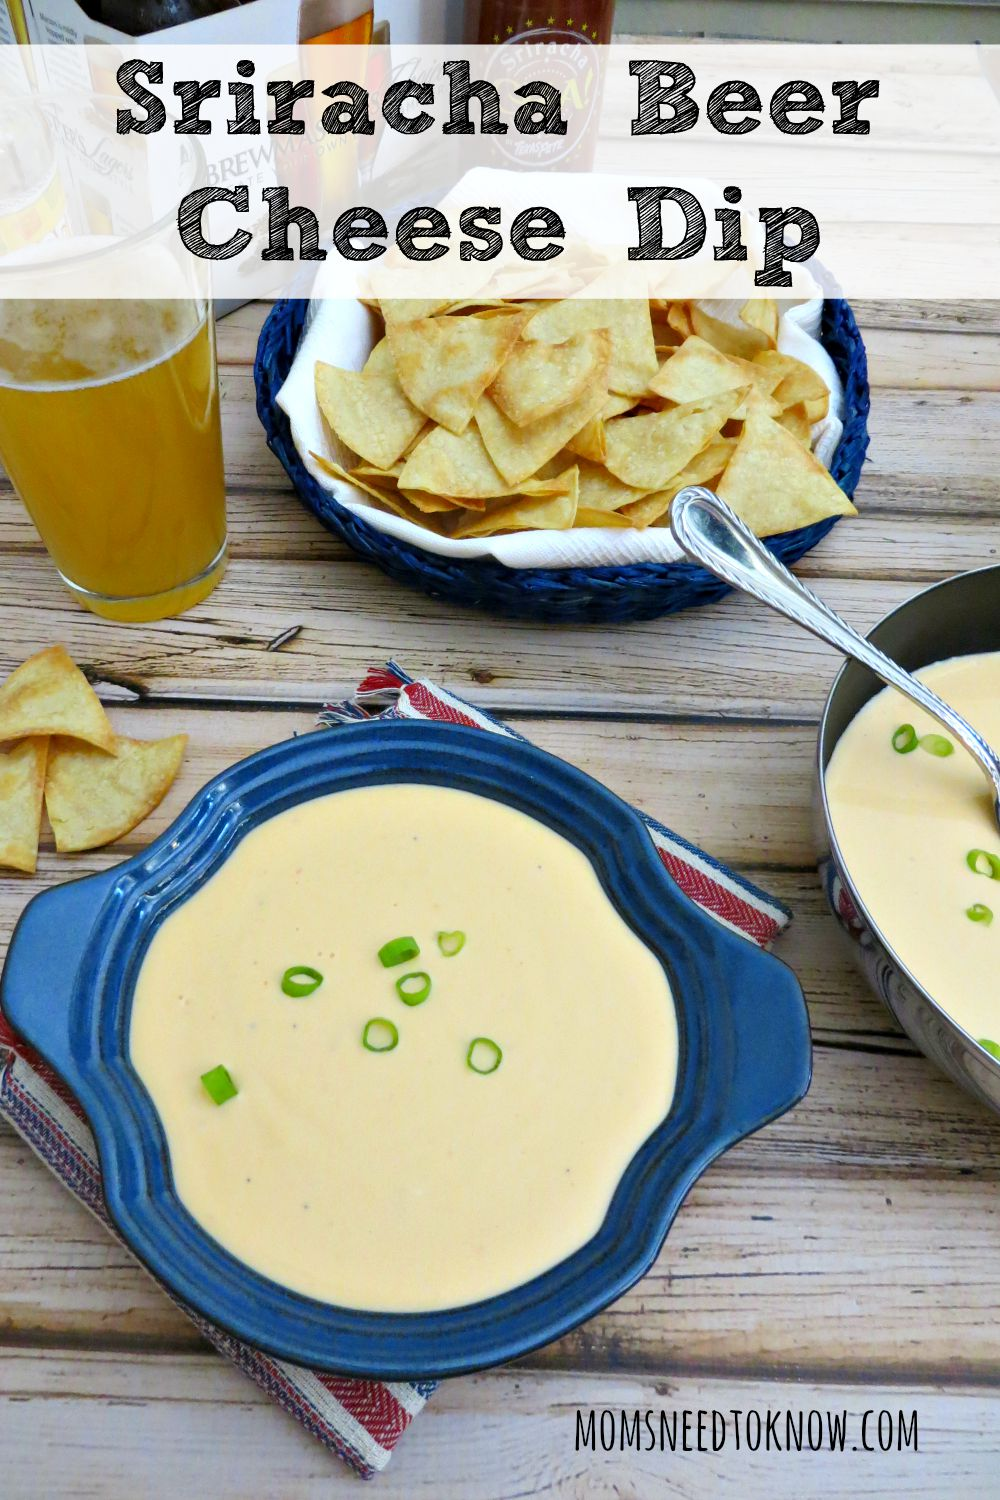 This smooth and creamy cheese dip is made with beer and Sriracha Sauce. So good that you might be tempted to skip the chips and grab a spoon!